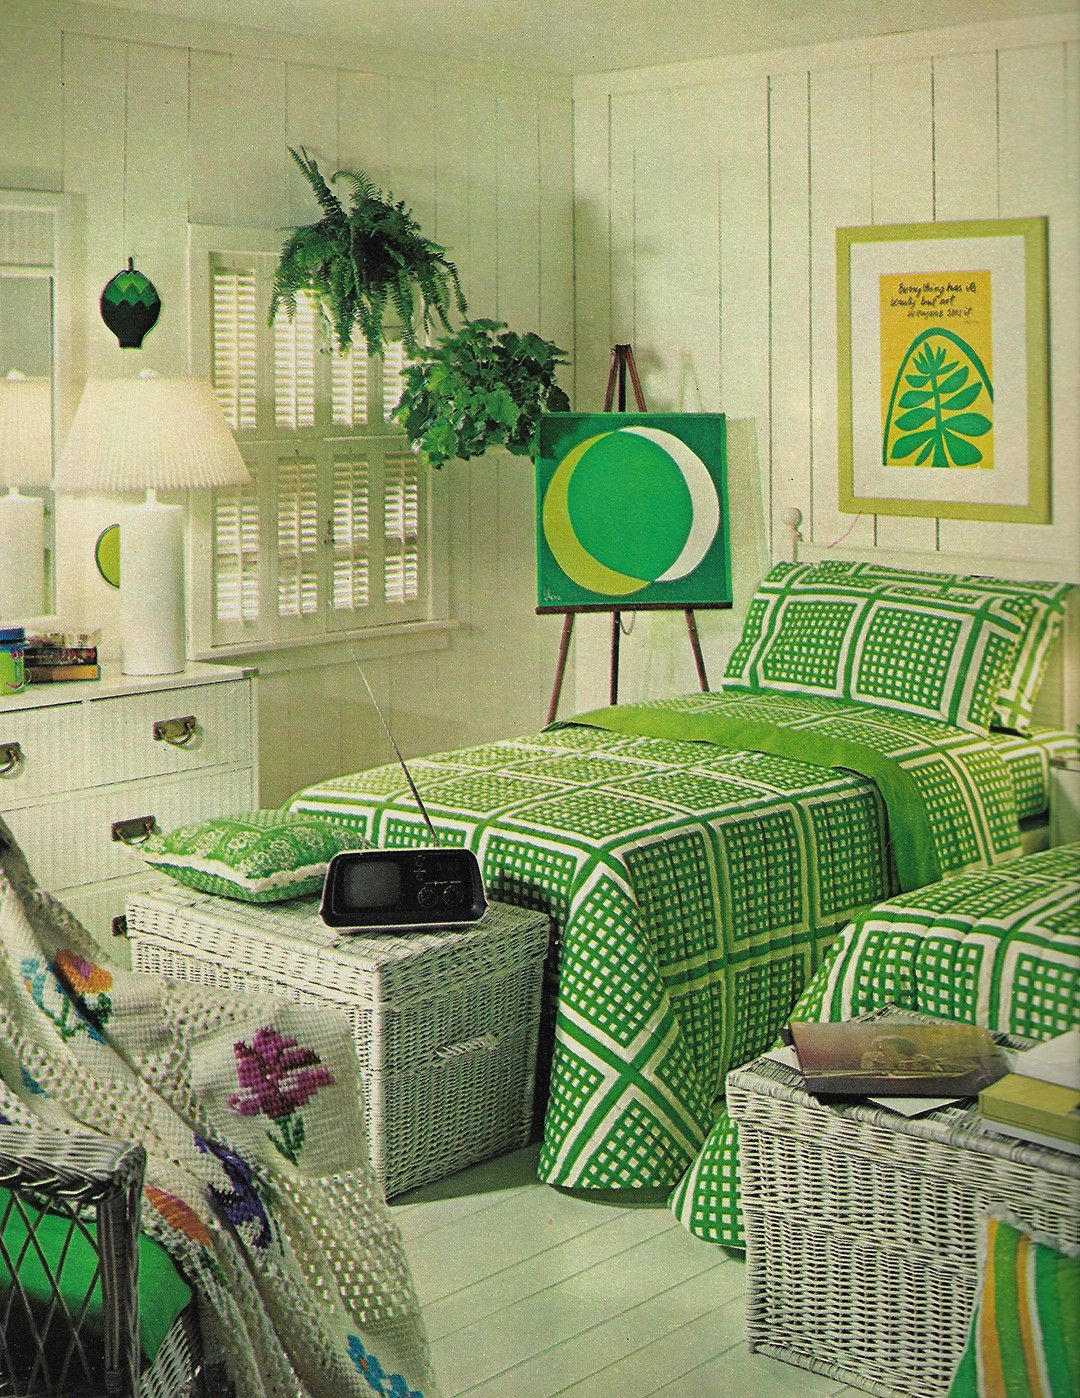 Pin by Caity Birmingham on 70s interiors | Retro home, Home